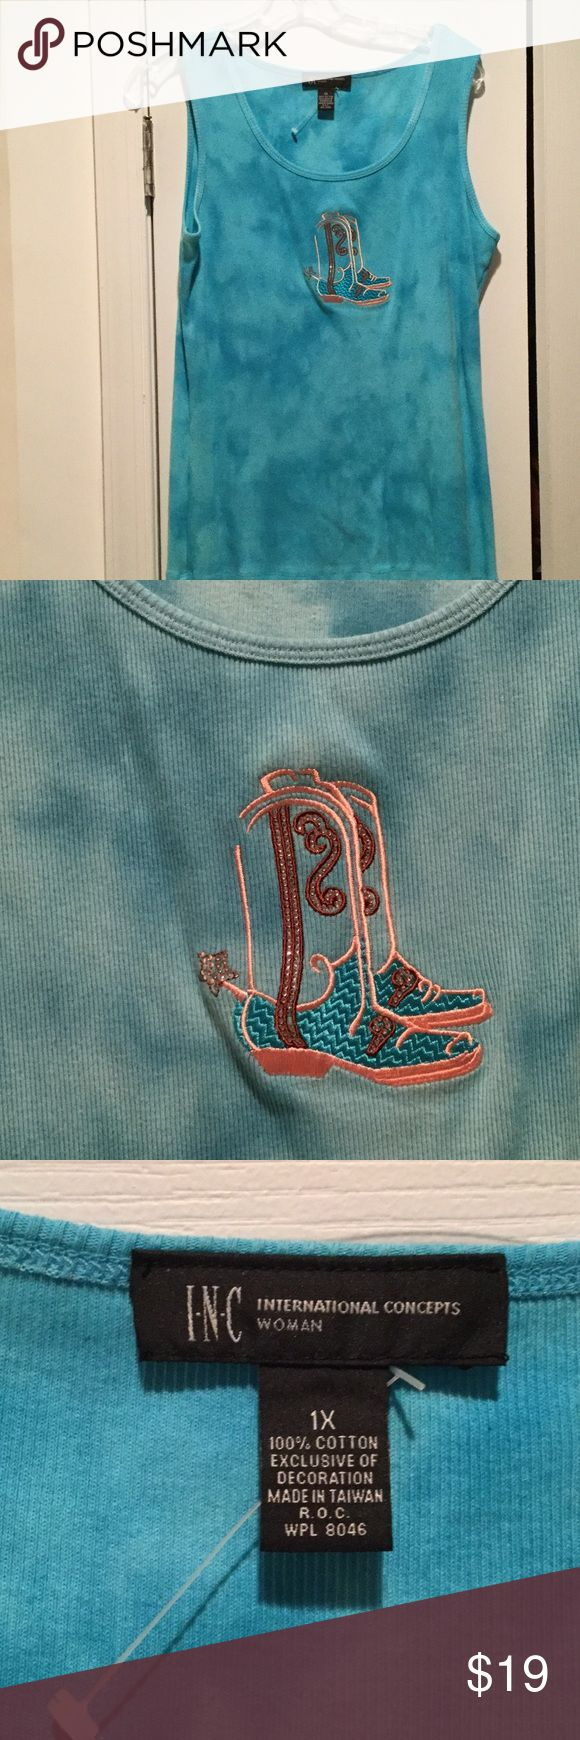 Inc woman's turquoise cowboy embellished tank NWOT Inc woman's 1x turquoise slight subtle variegated color pattern with embroidered cowgirl and sequined boot appliqué. Super cute and a fun layering piece of just a cute tank for summe .  NWOT INC International Concepts Tops Tank Tops